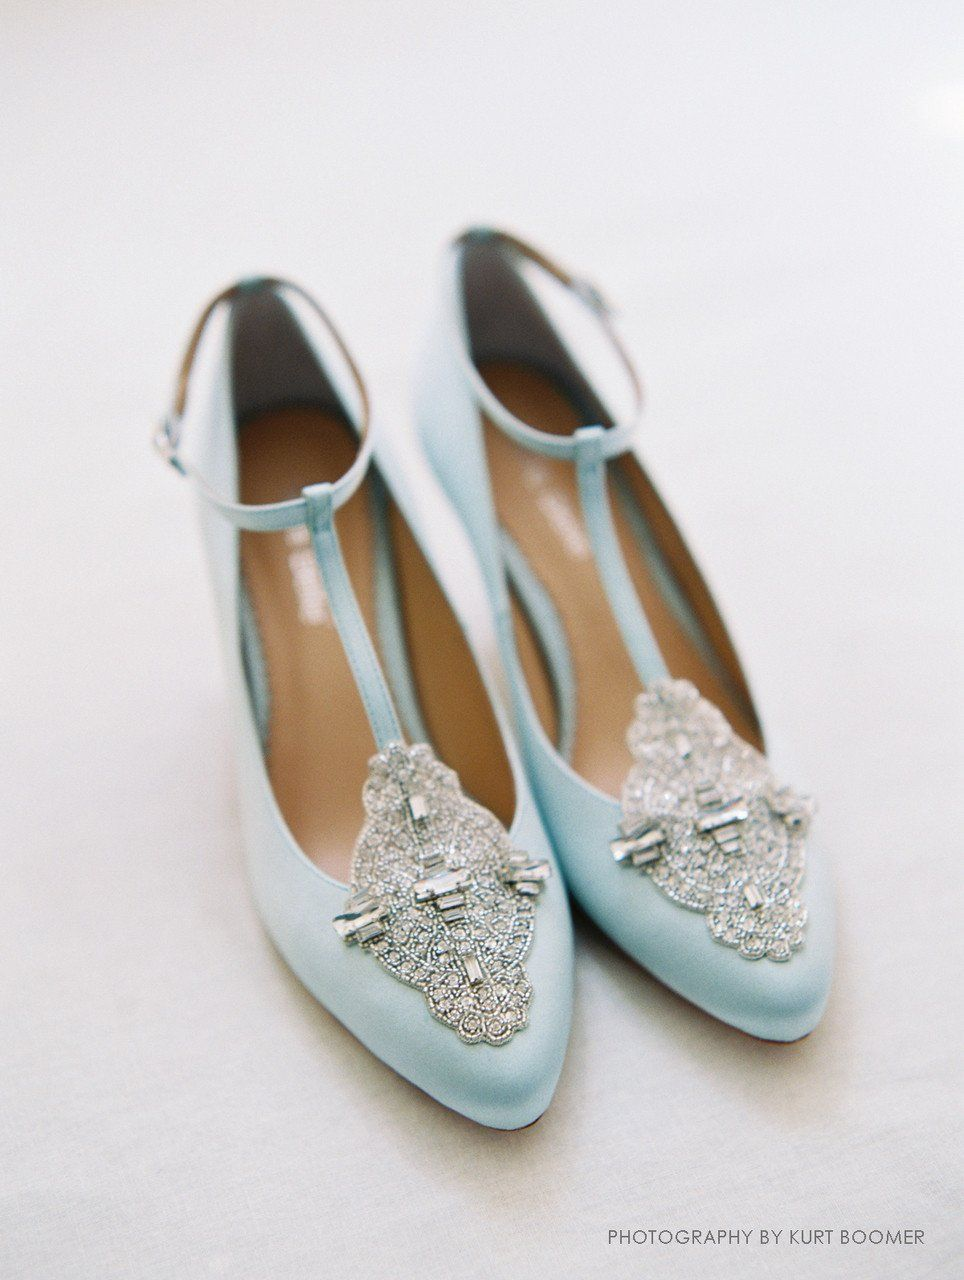 Annalise In Icy Blue Eternal Bridal Collection T Strap Art Deco Wedding Shoes Vintage Inspired By The Glamour Of Great Gatsby Era